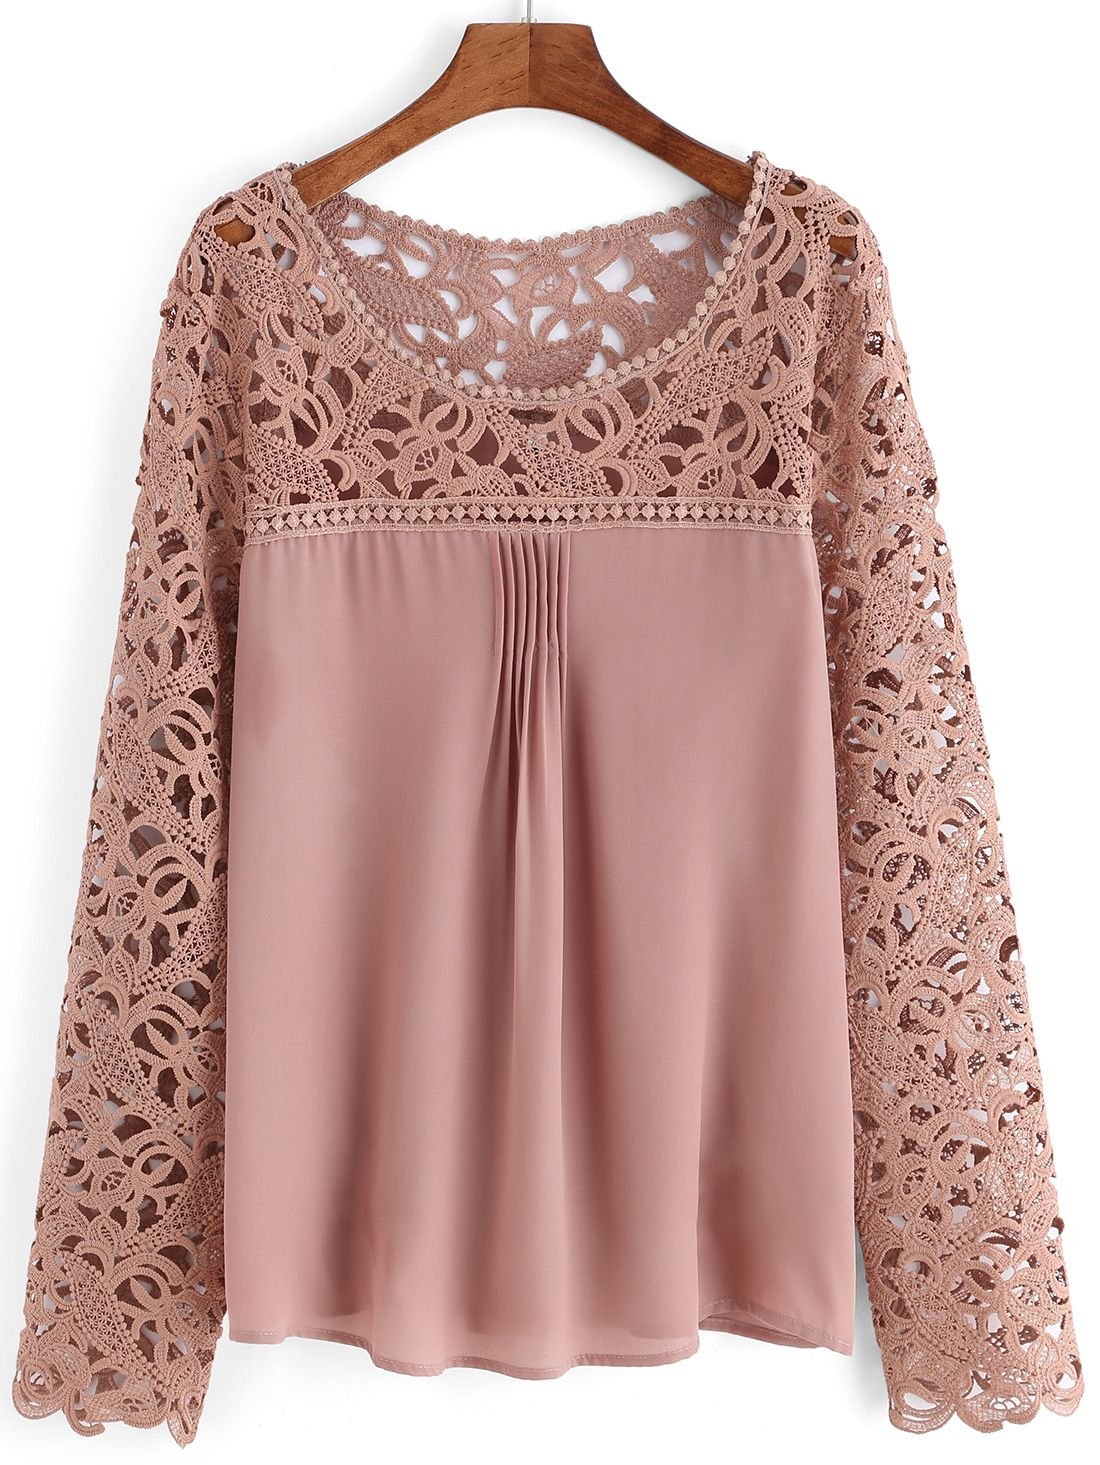 Pink Scoop Neck Lace Splicing Chiffon Blouse   -SheIn